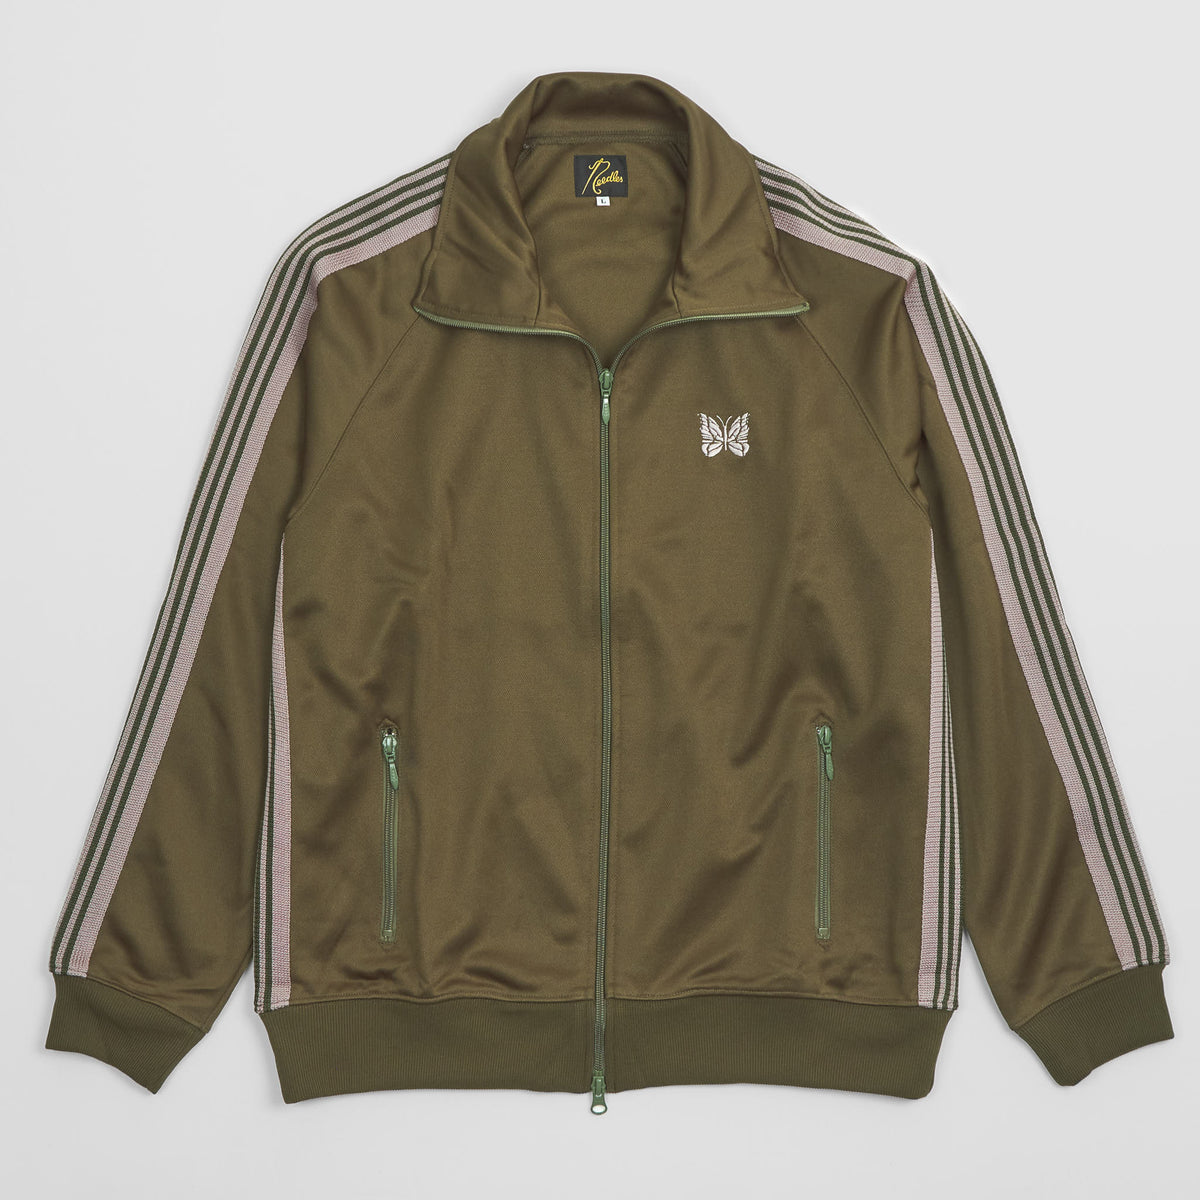 Needles Track Jacket